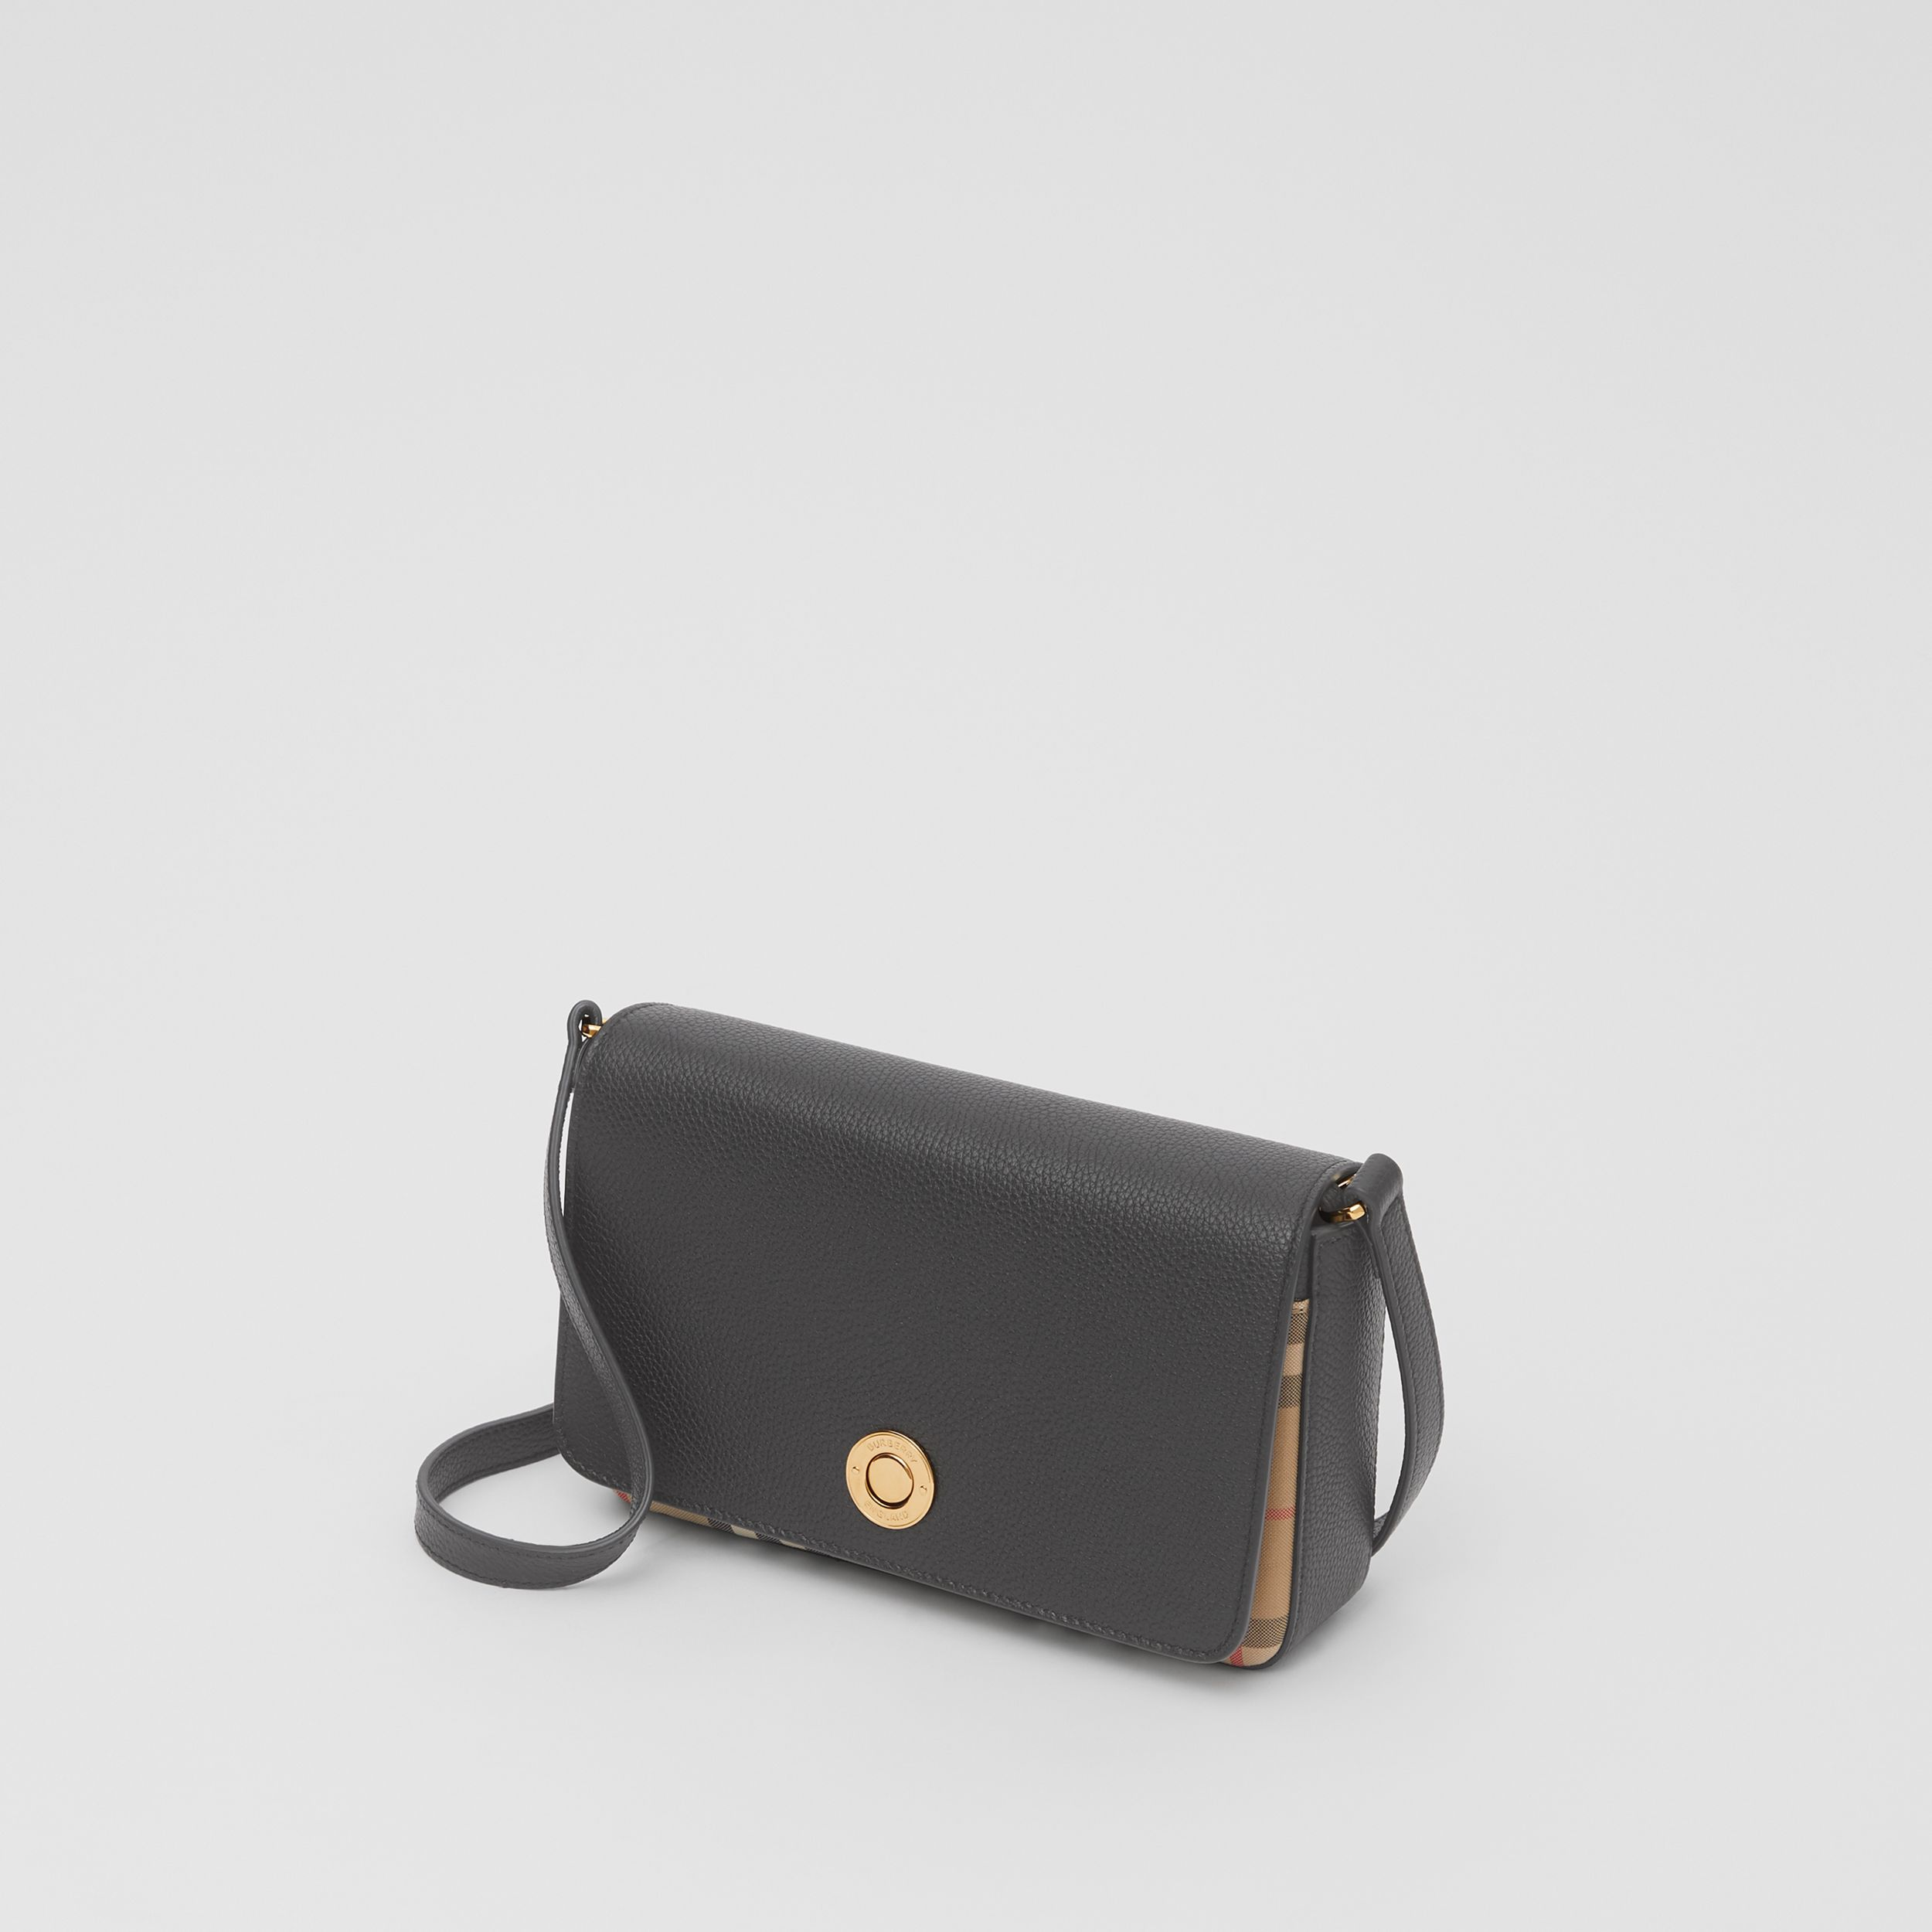 Small Leather and Vintage Check Crossbody Bag in Black - Women | Burberry - 4